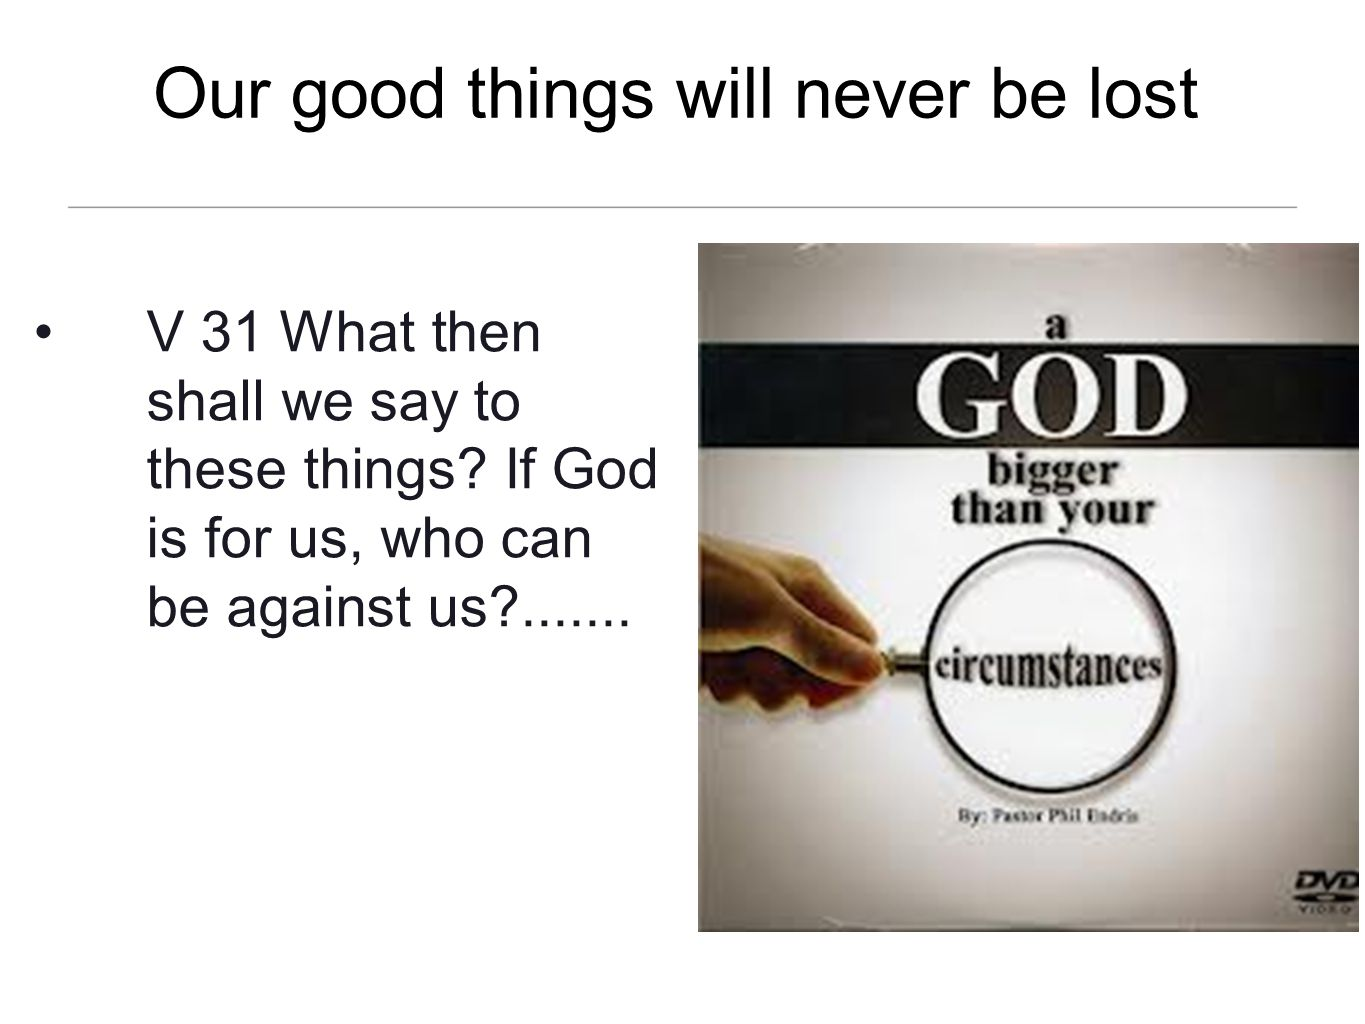 Our good things will never be lost V 31 What then shall we say to these things? If God is for us, who can be against us?.......